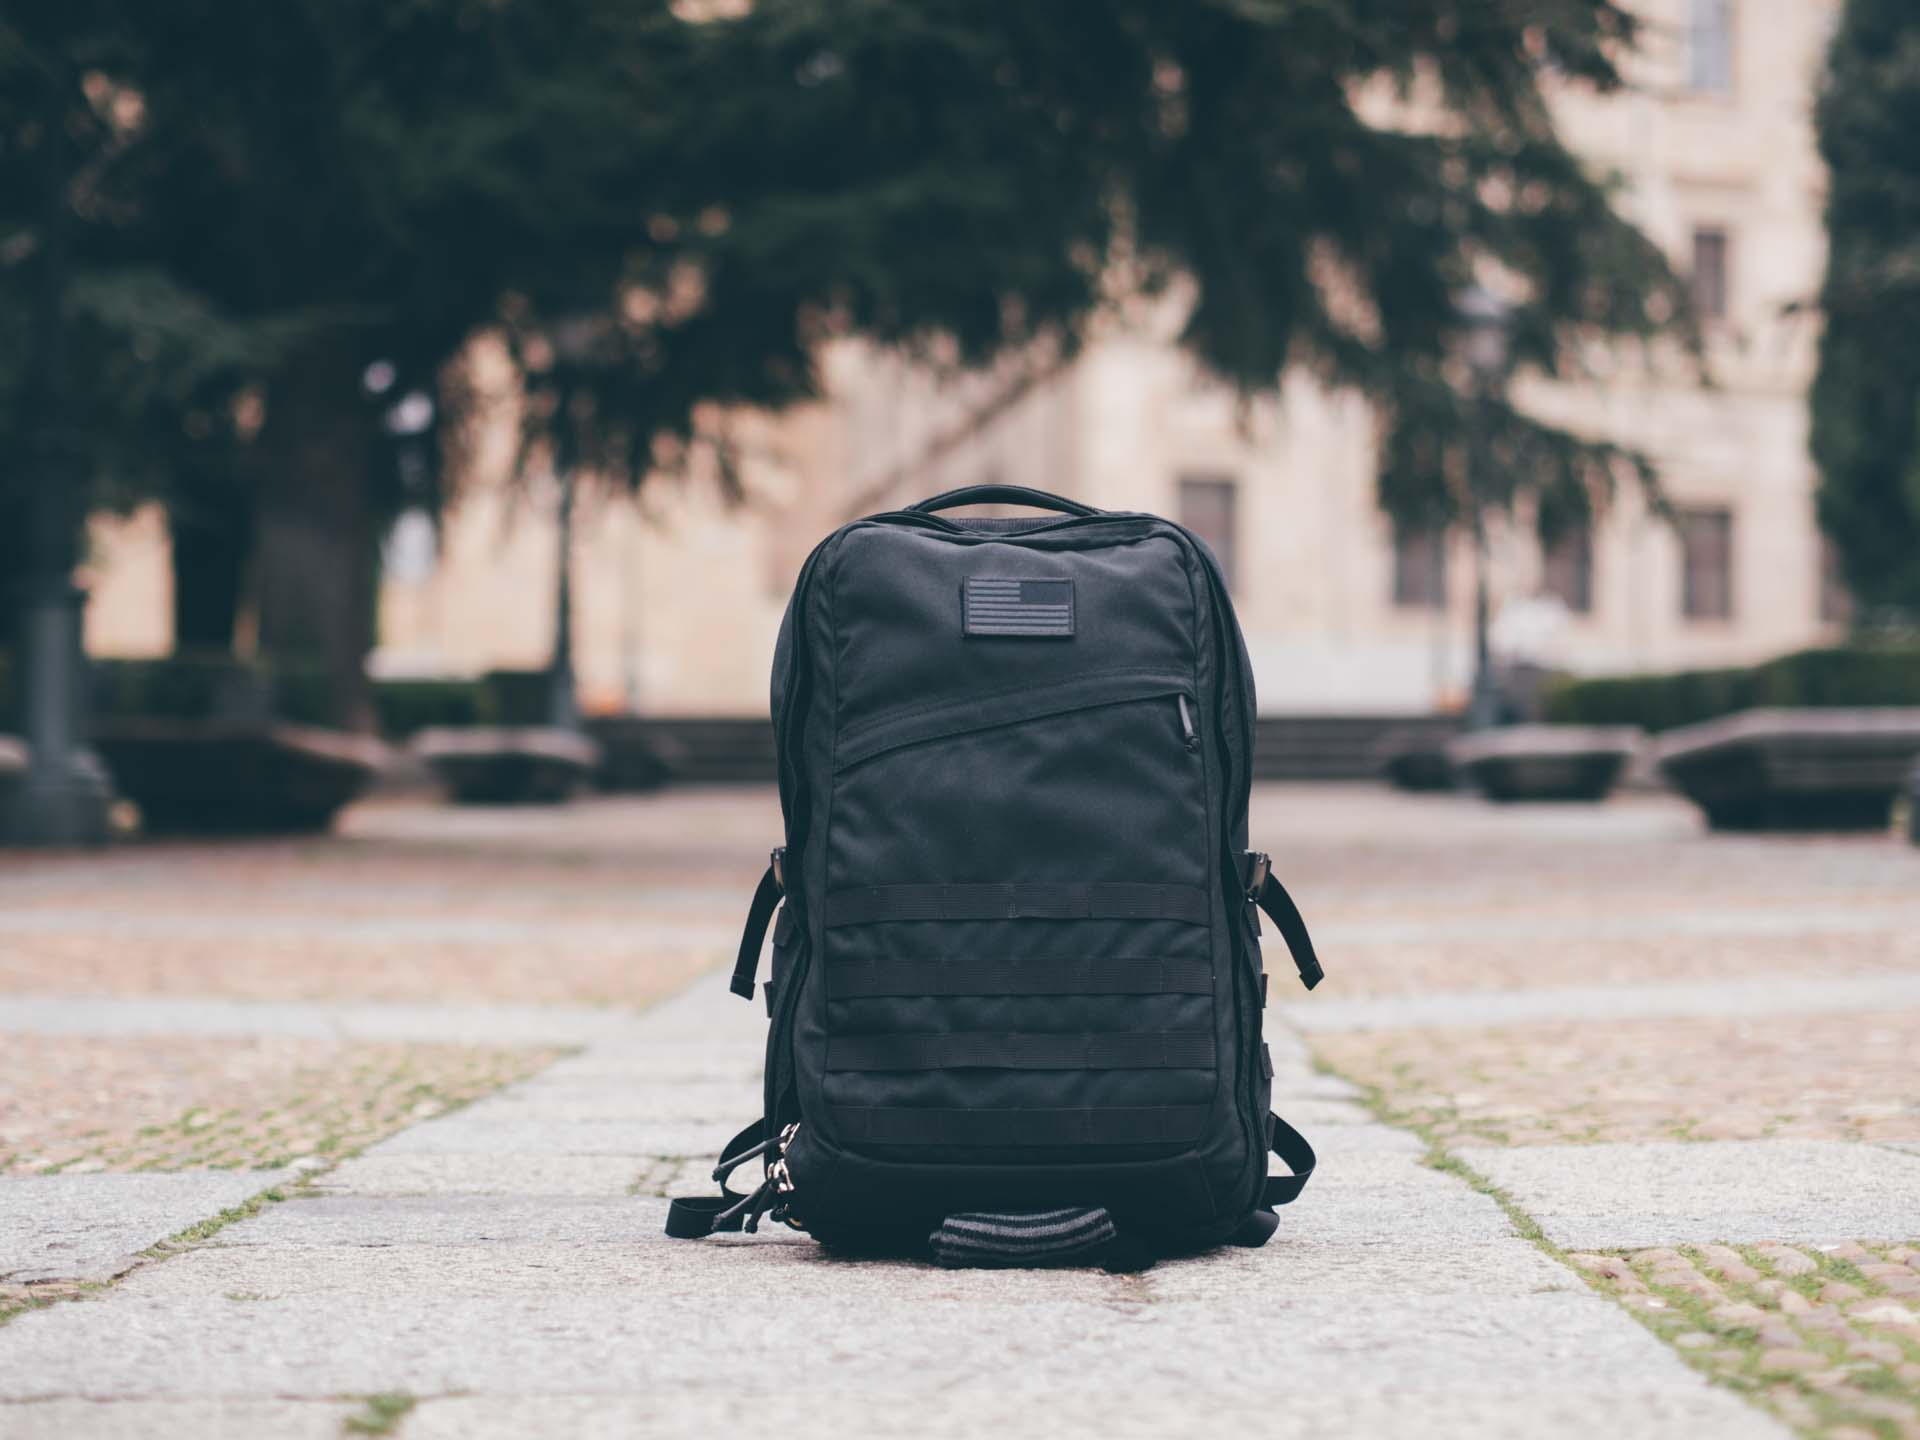 A Review of the GORUCK GR2 — Tools and Toys